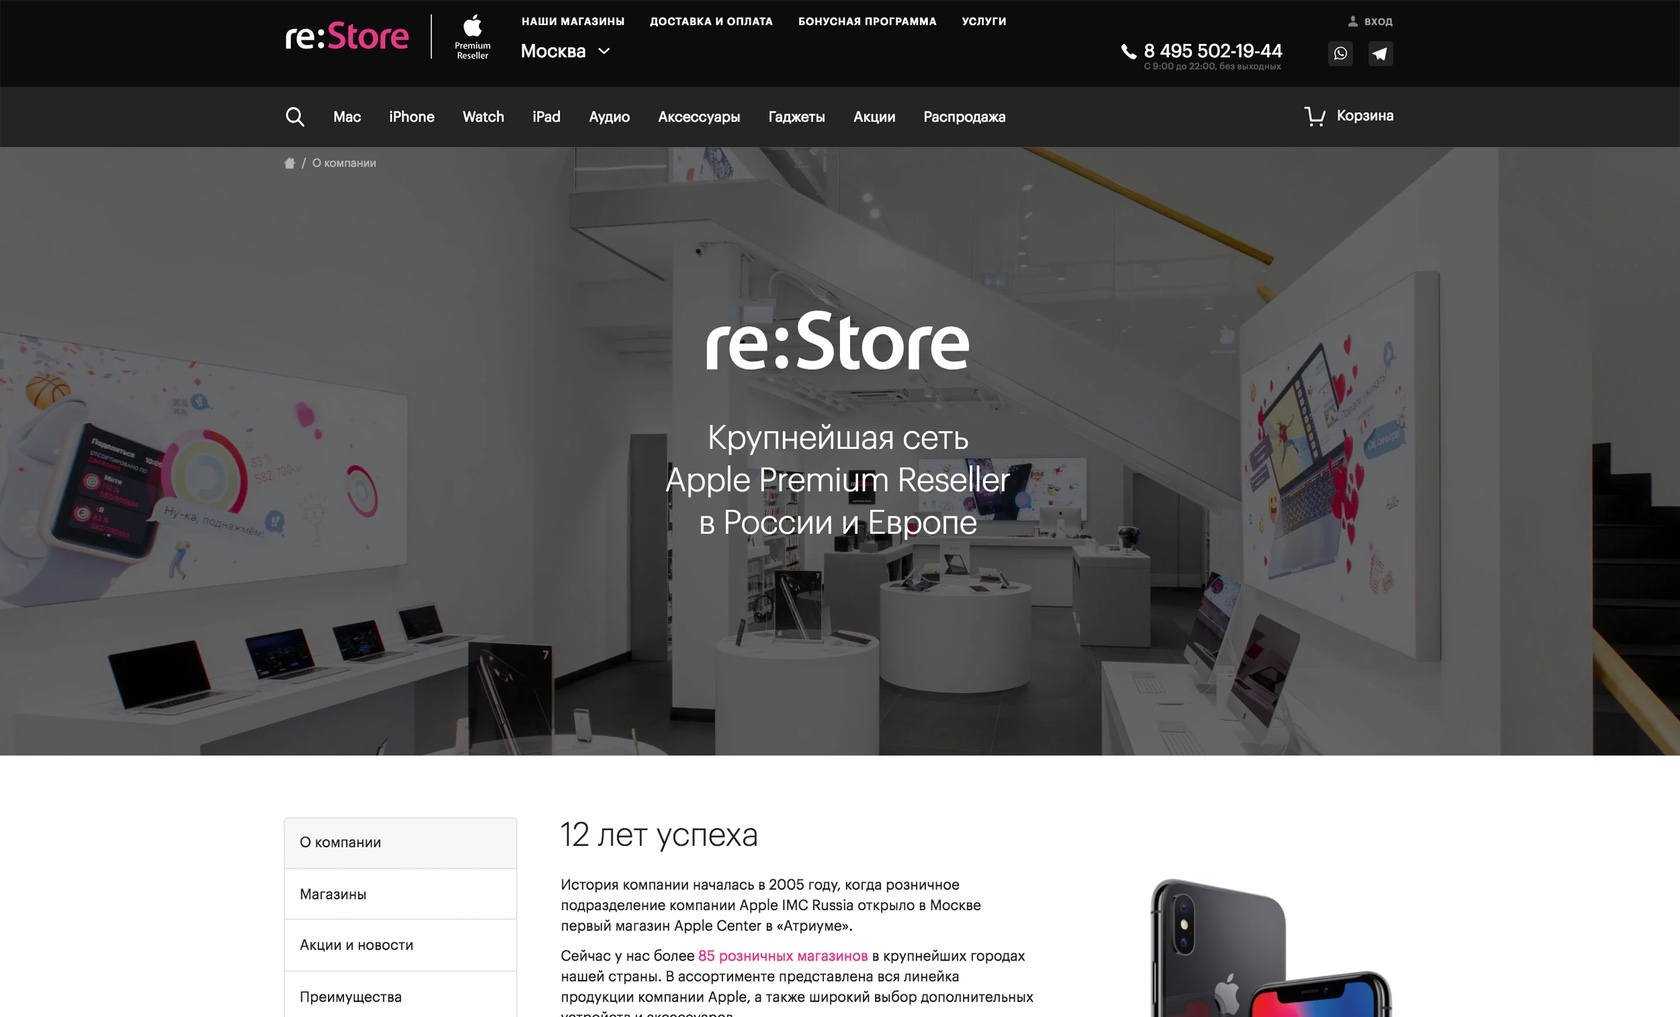 re:Store